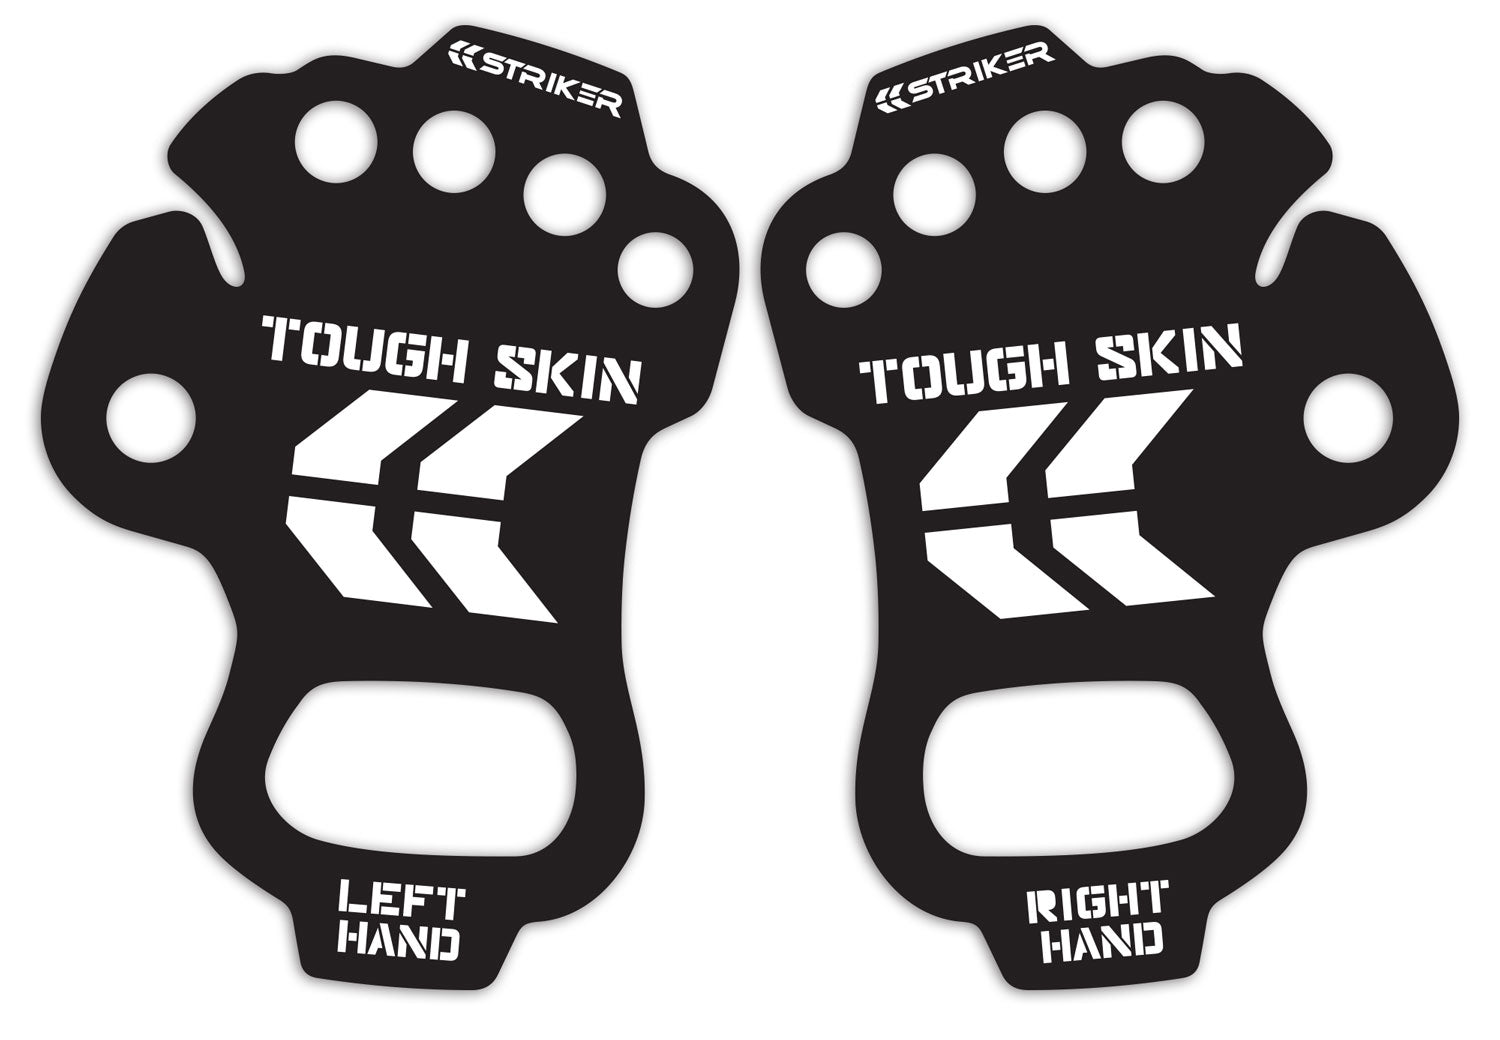 STKR Concepts Tough Skin pair included in packaging